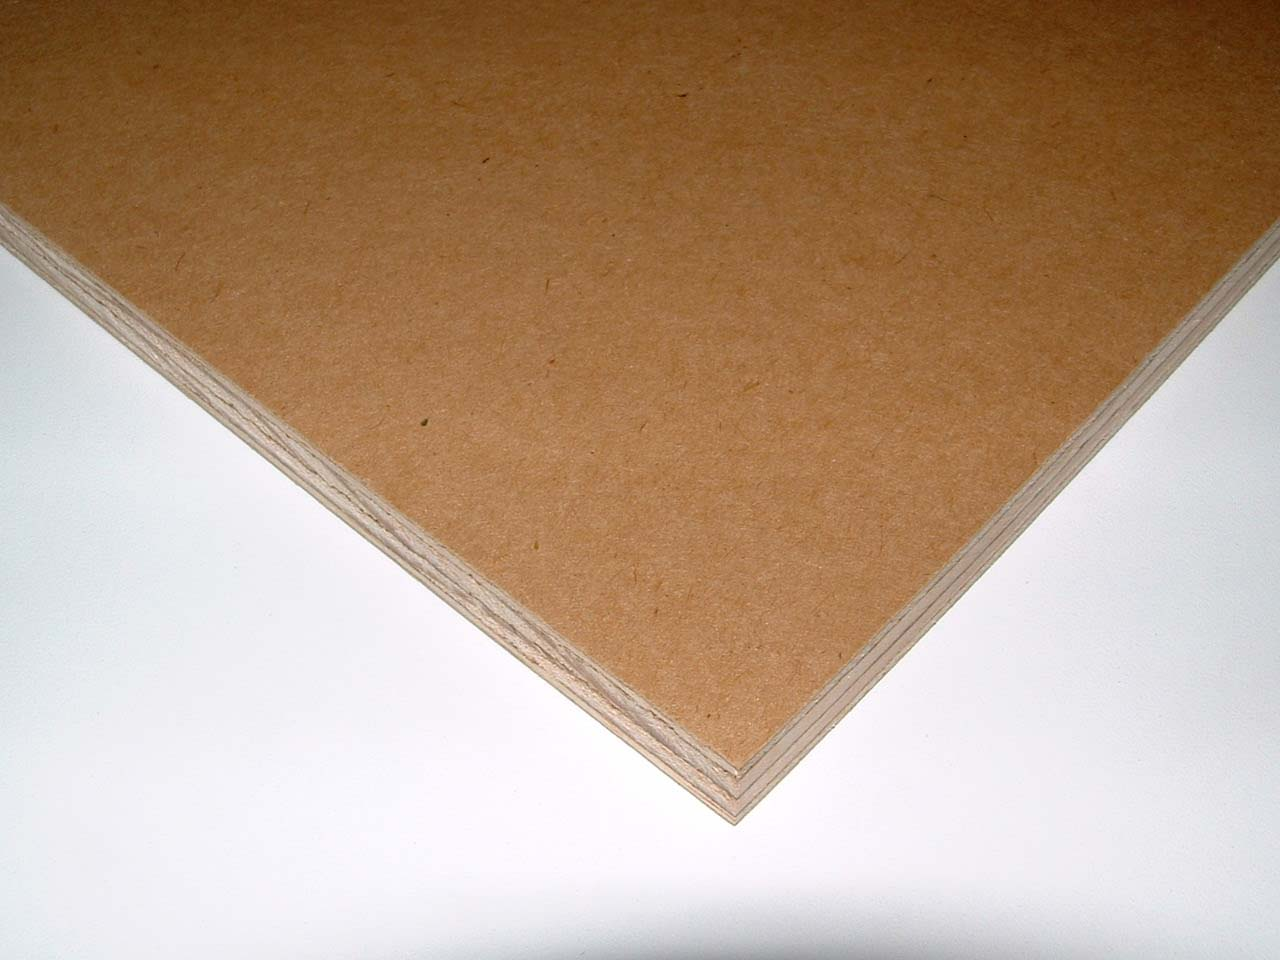 Medium Density Overlay Board ~ Review medium density overlay mdo plywood for jig